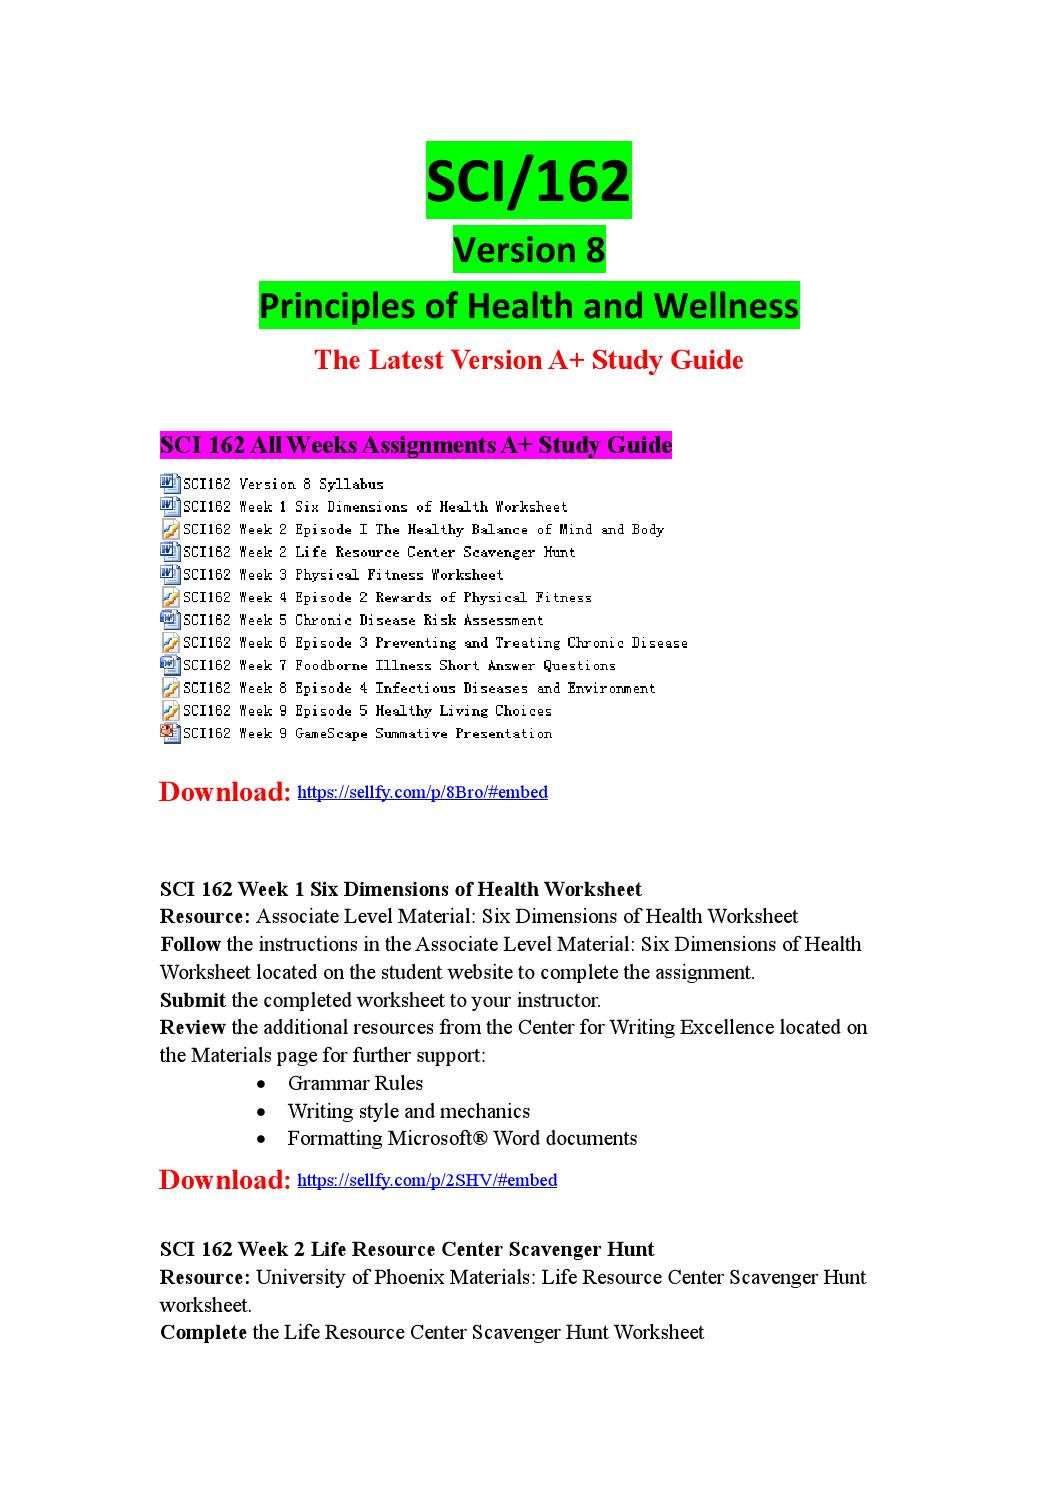 sci 162 six dimensions worksheet View notes - principles of health and wellness week 1 assignment 1 from science sci 162 at university of phoenix six dimensions of health worksheet sci/162 version 5 1 associate level material six.